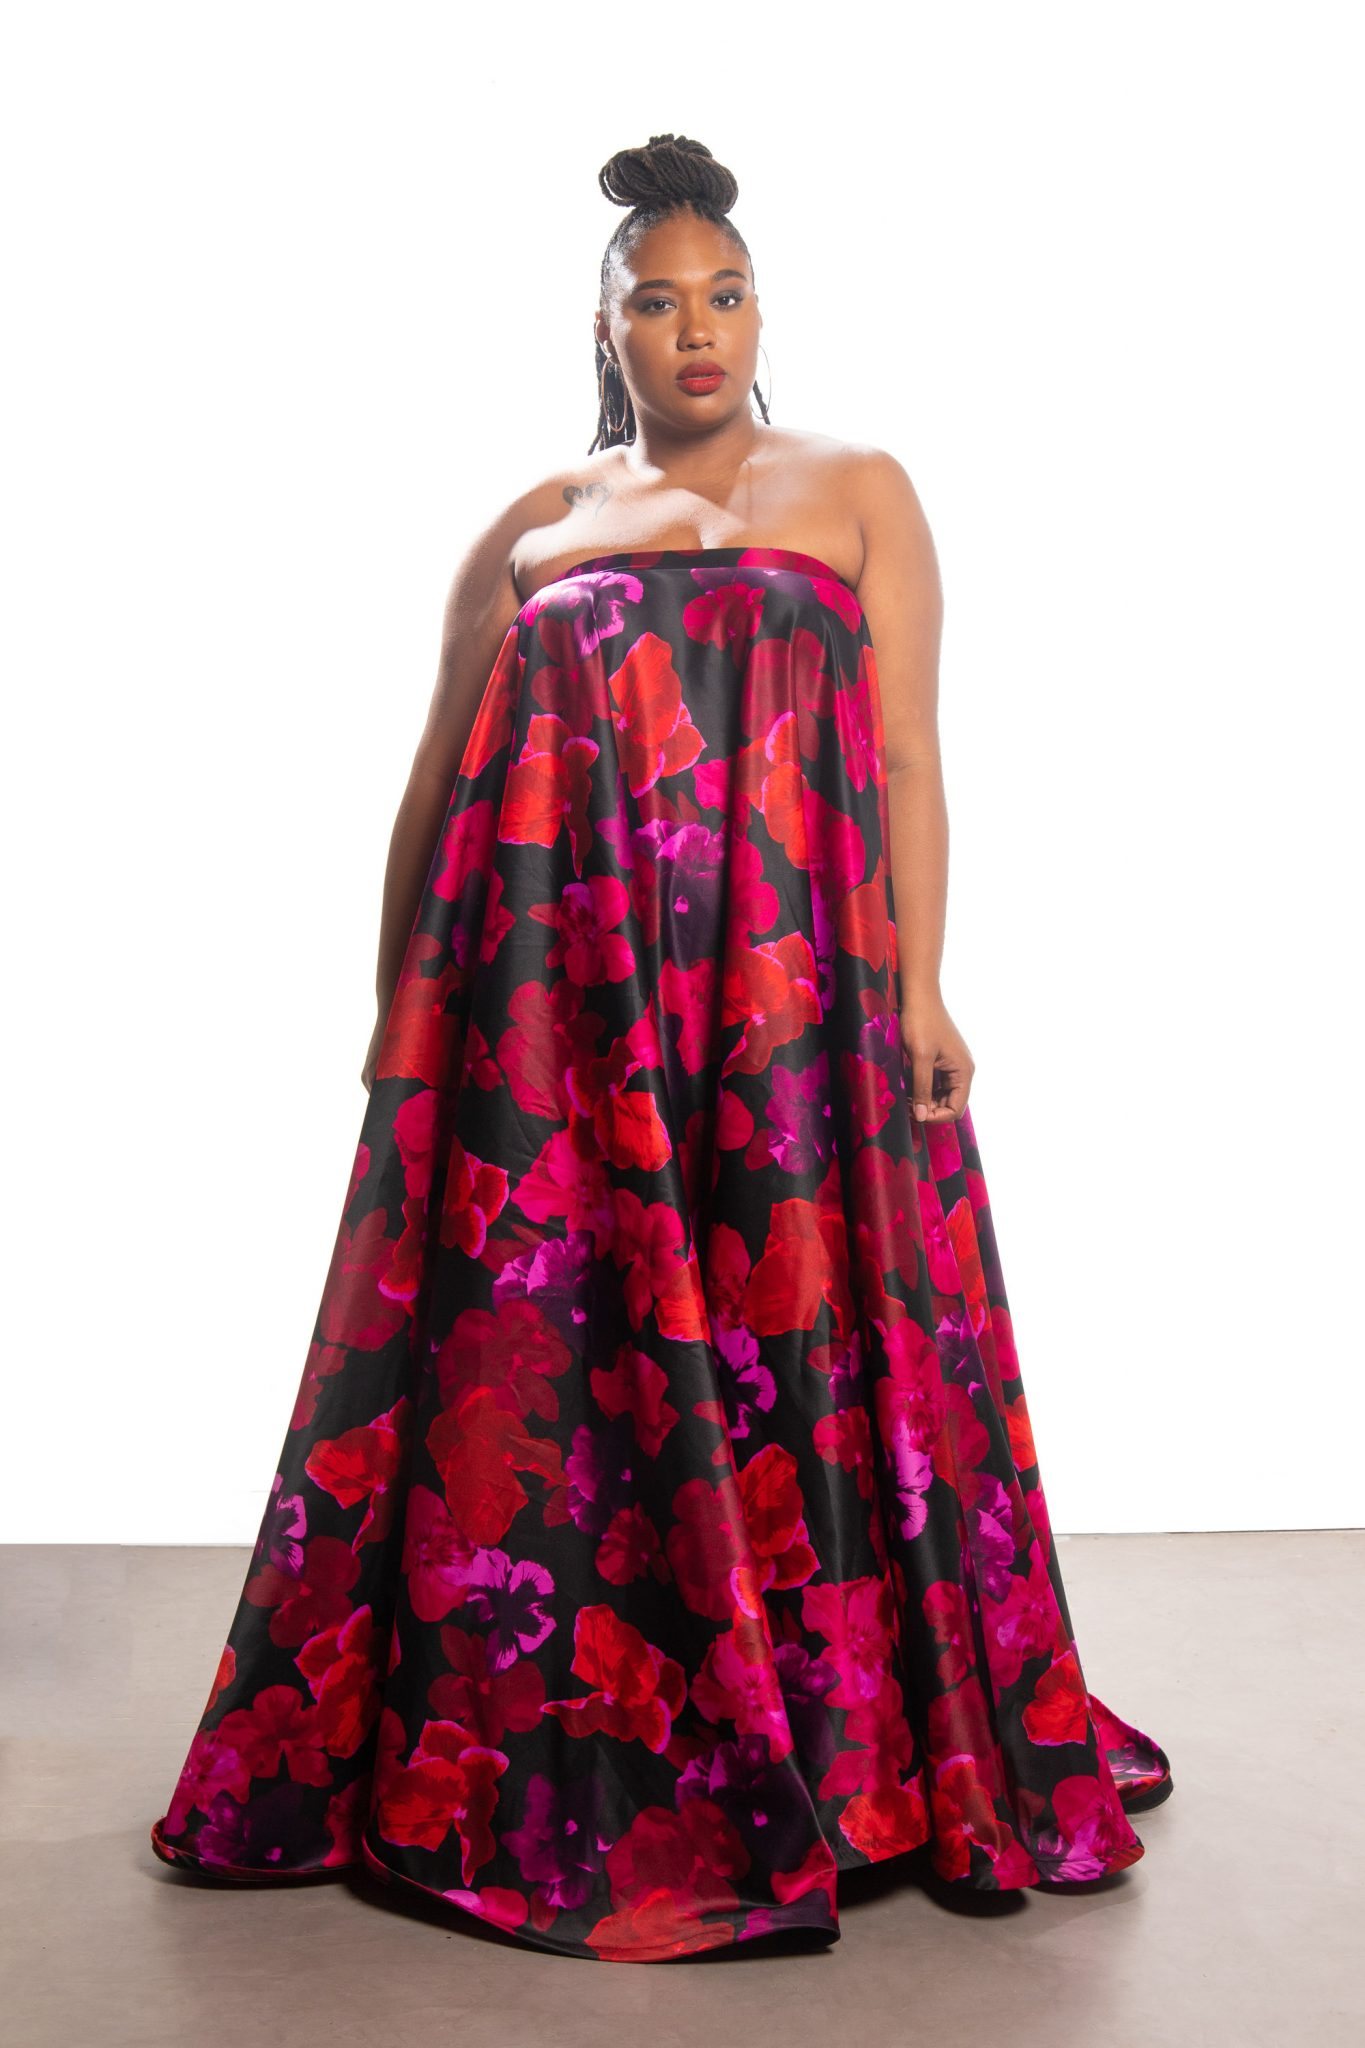 Plus Size Designer- Courtney Noelle Holiday Collection